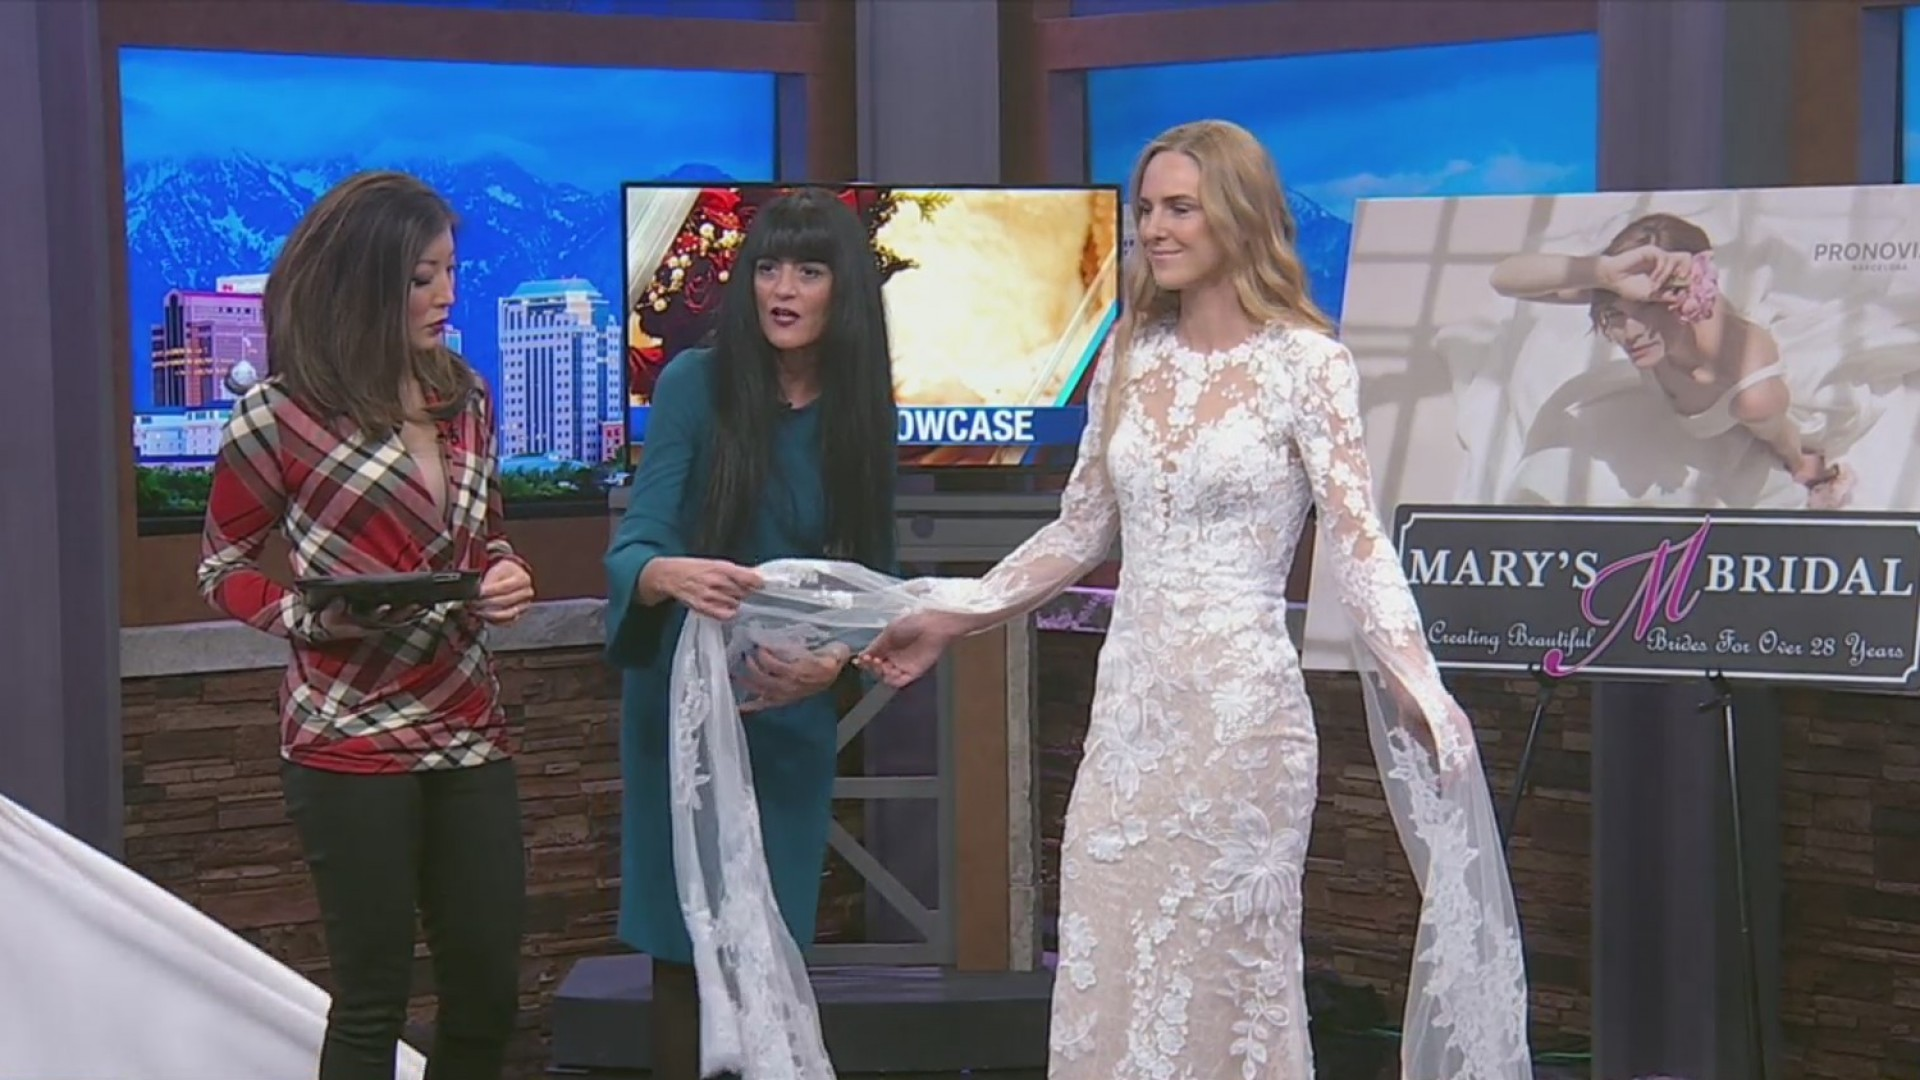 What's new in bridal?